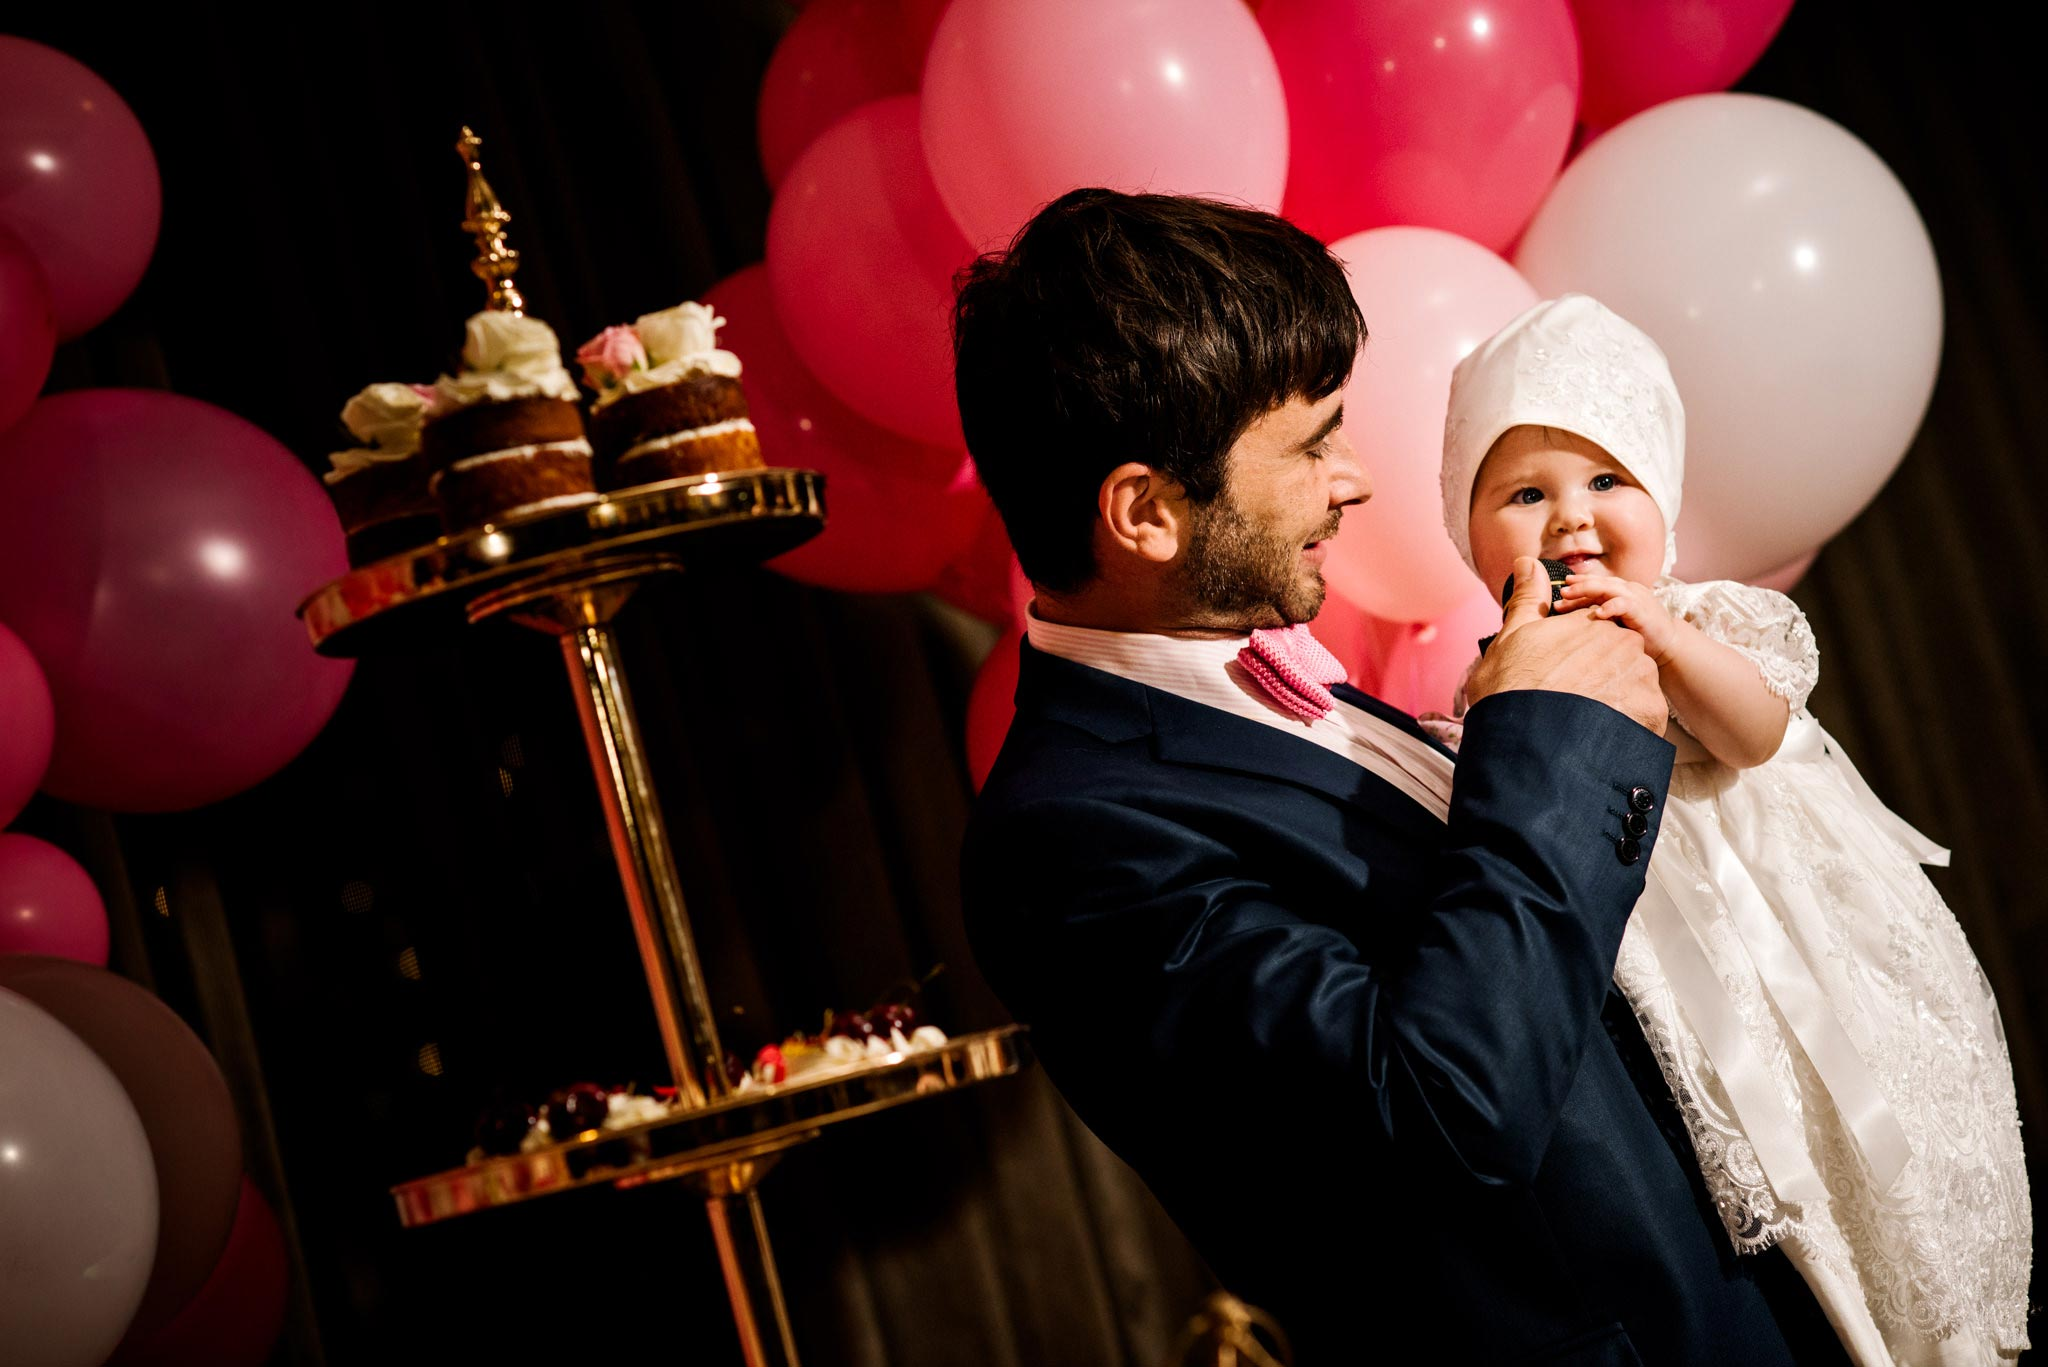 Godfather and baby during christening speeches